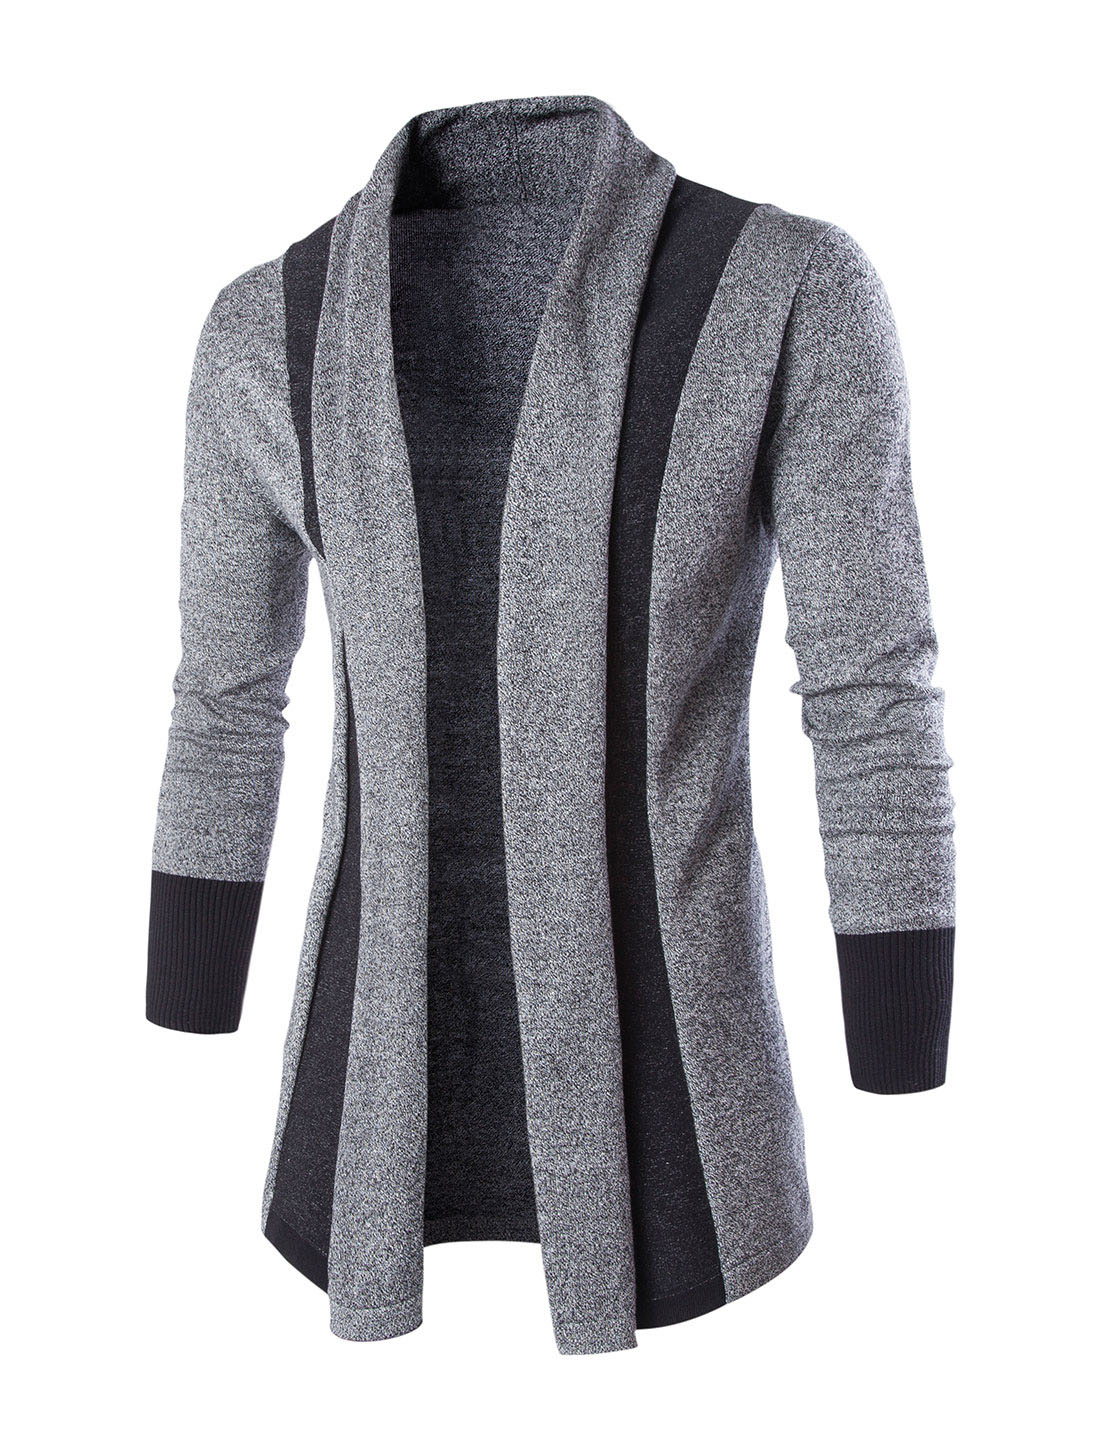 Men Shawl Collar Contrast Color Long Sleeves Knit Cardigan Gray L